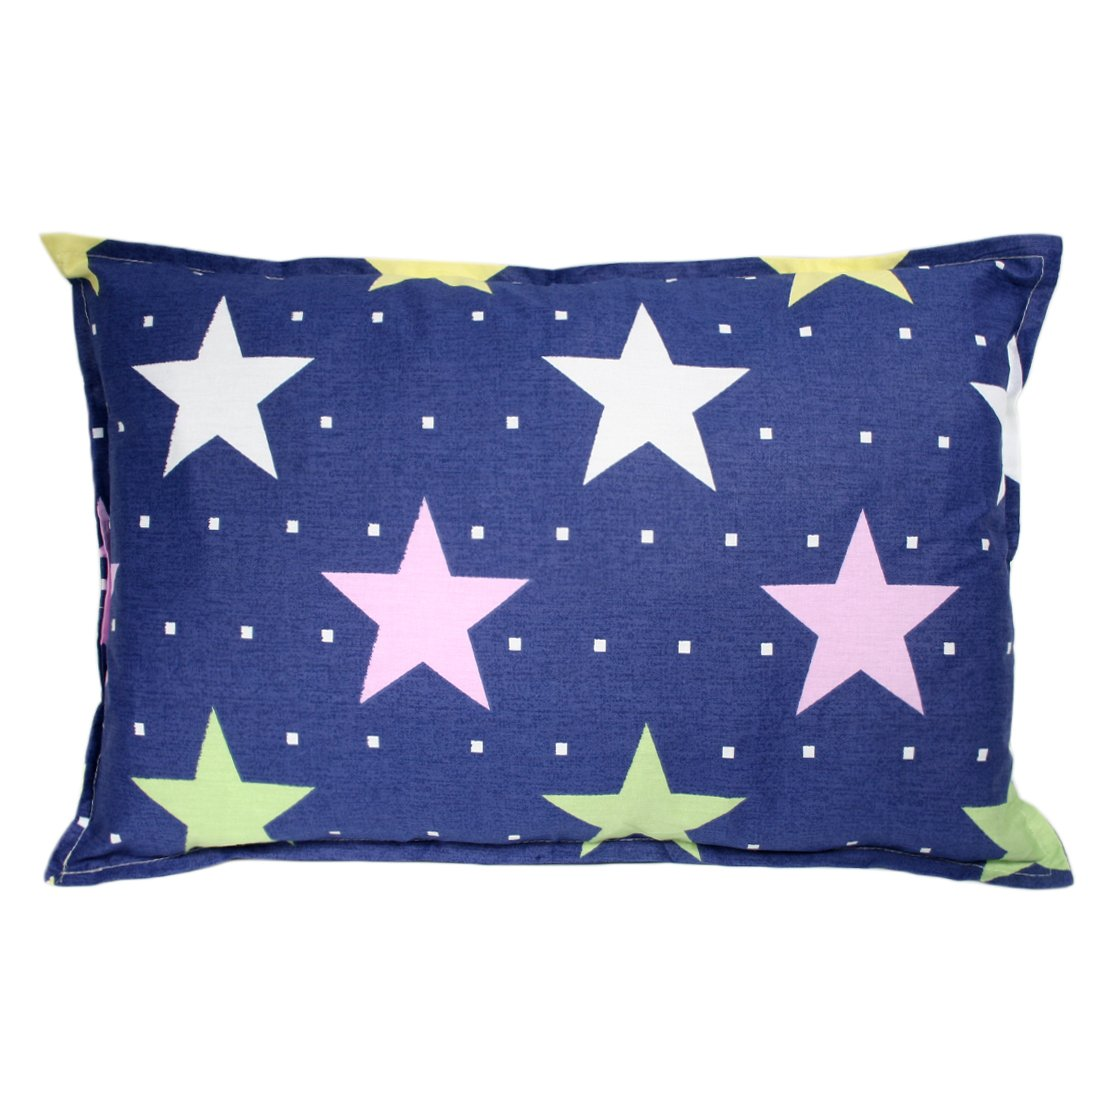 MyKazoe Toddler Pillowcase - 13.5'' x 18.5'' (Starry Night)